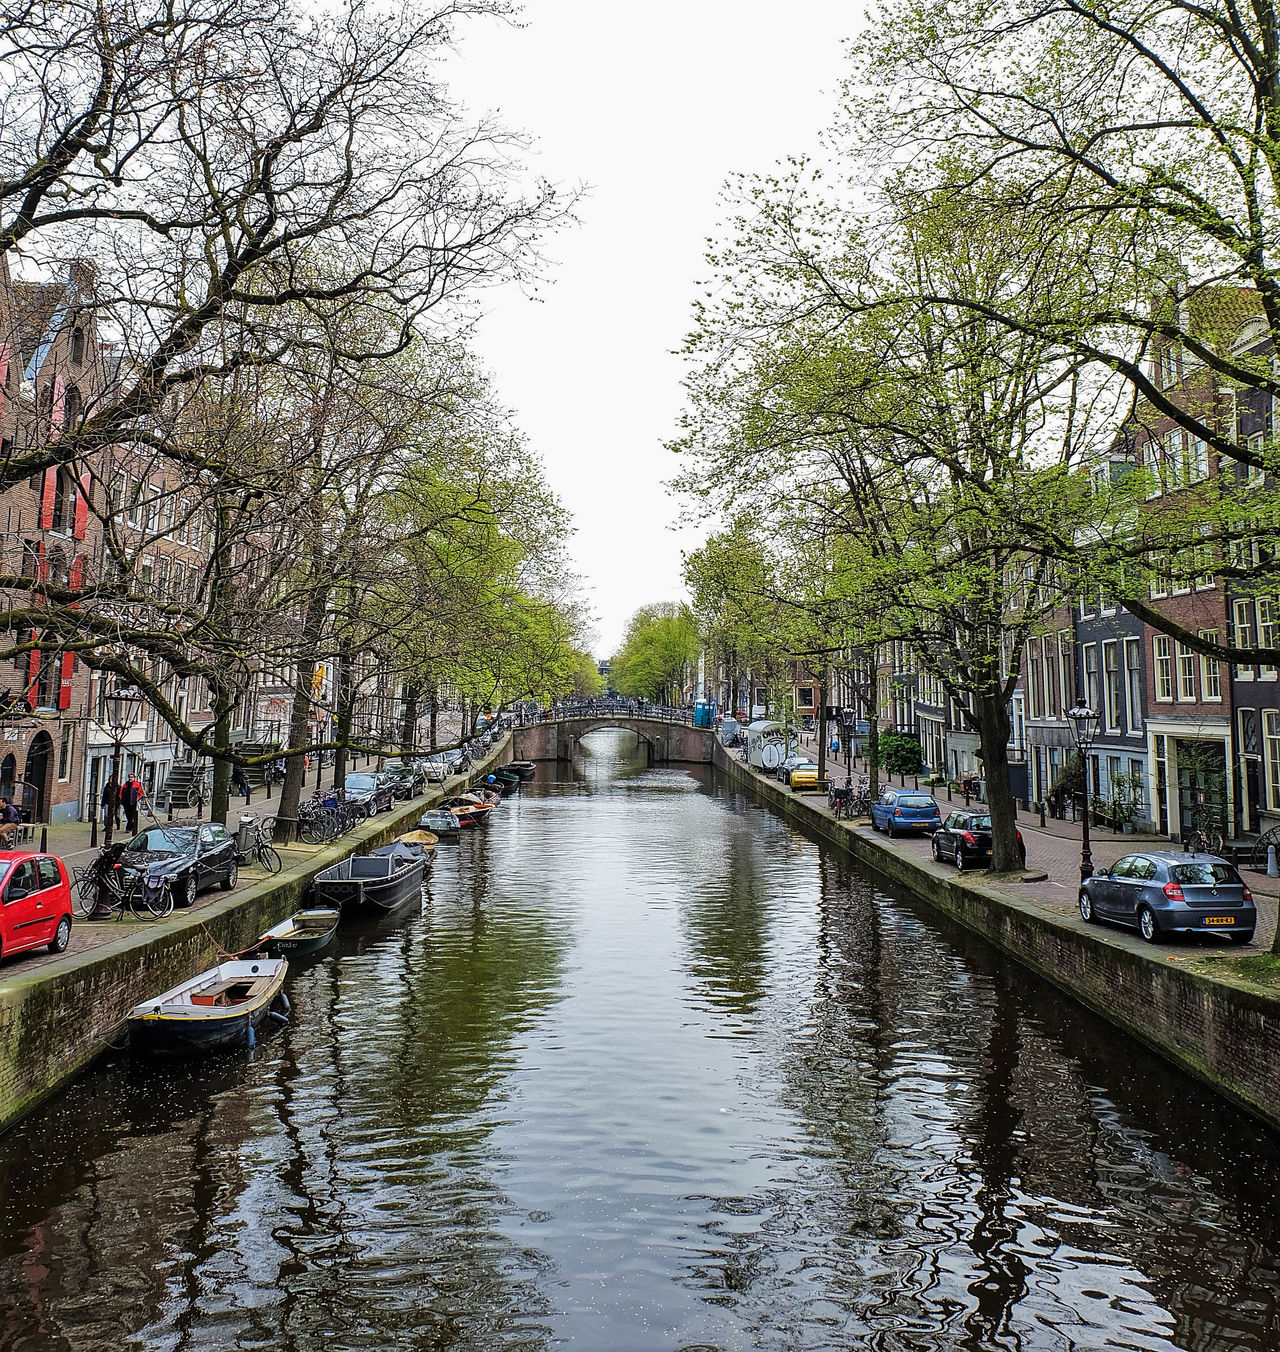 The infamous canals of Amsterdam. The canals where the famous invisible whale lives. Amsterdam Amsterdam Canal Amsterdam.nl Amsterdamcity Amsterdamthroughmycamera Architecture Building Exterior Canal City City Life Love No People Outdoors Residential District Sky Water Waterfront